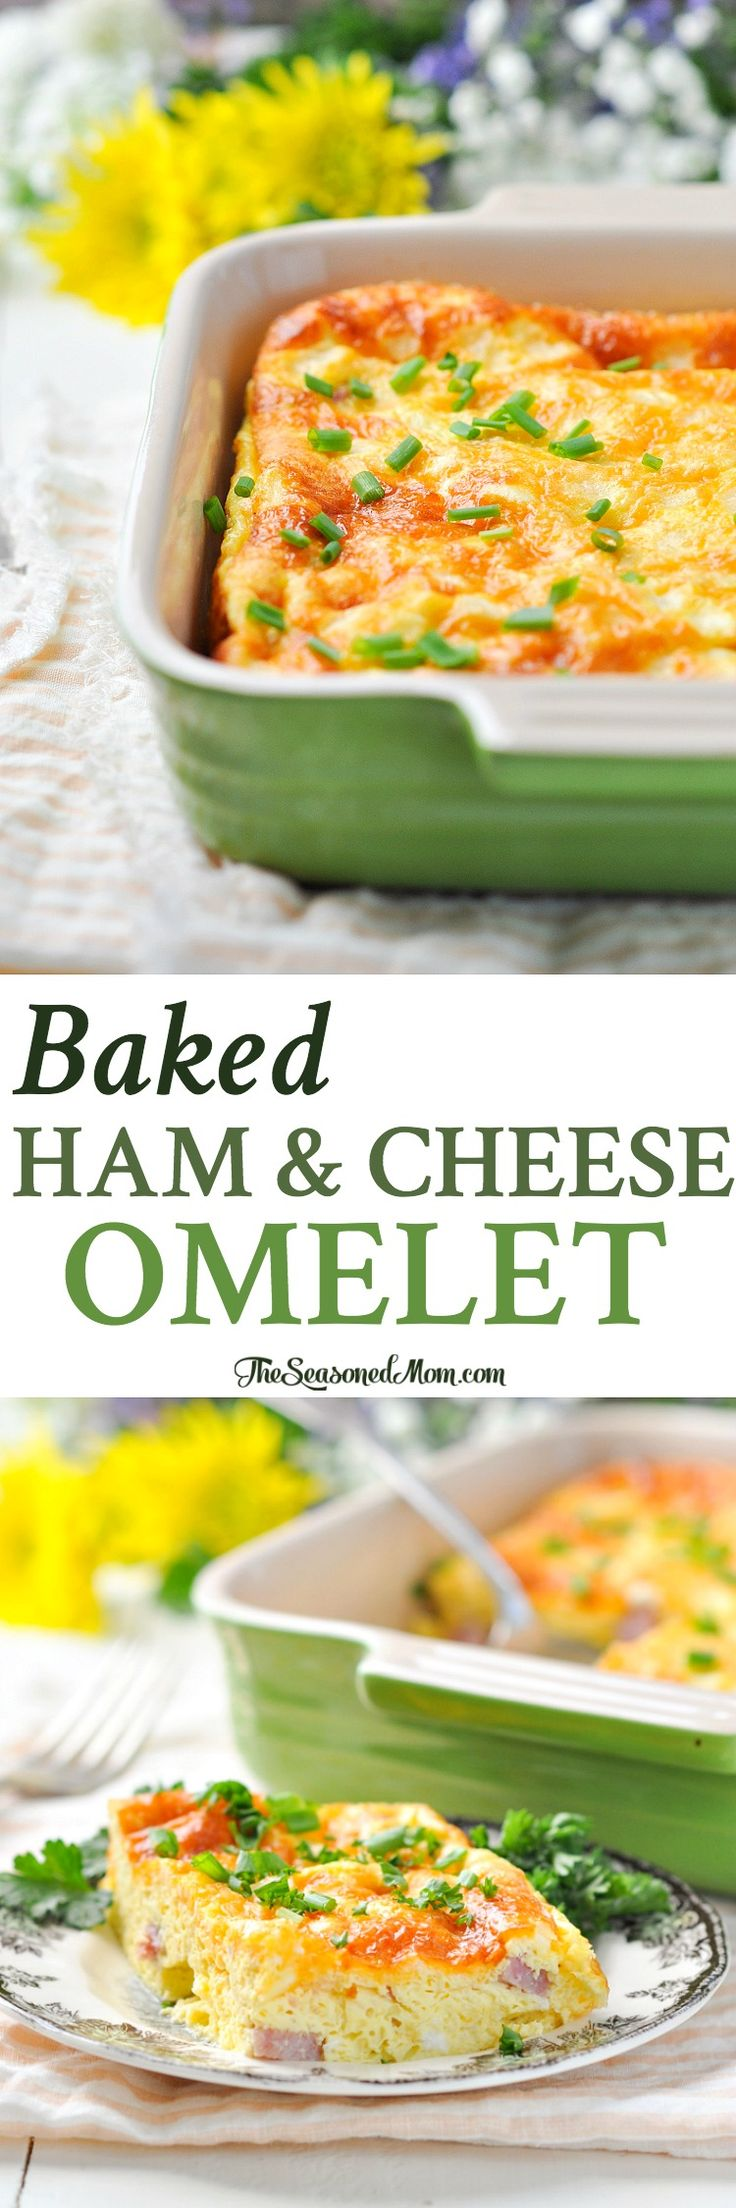 Baked Ham and Cheese Omelet | Healthy Breakfast Recipes | Breakfast Ideas Healthy | Breakfast Casserole | Leftover Ham Recipes | Brunch Ideas | Brunch Recipes | Brunch Party | Egg Recipes